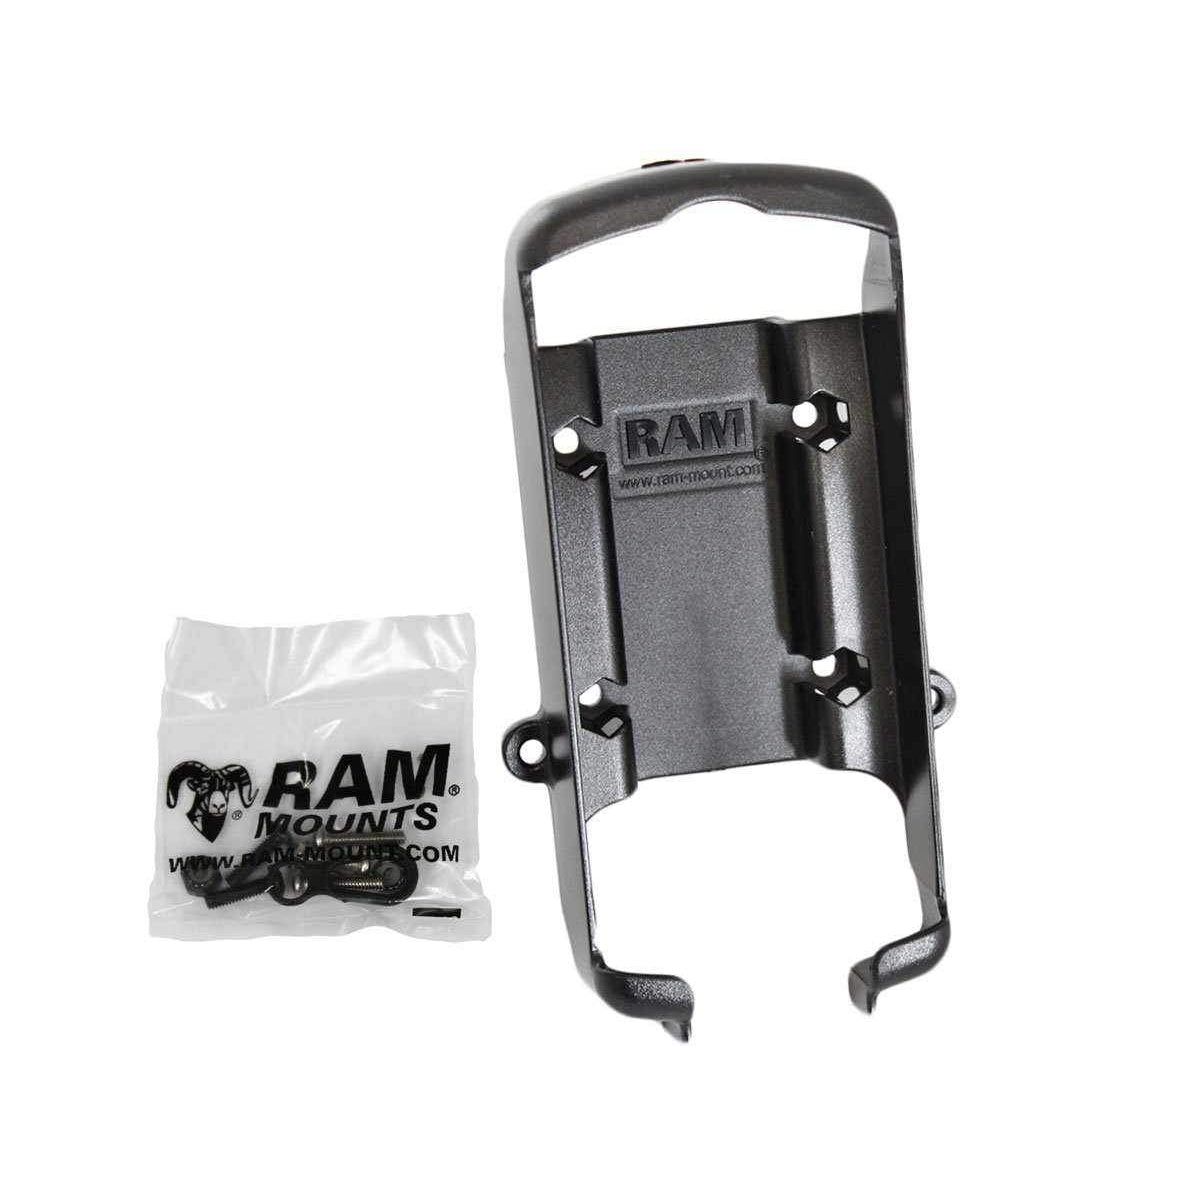 RAM Holder for Garmin 76 GPS (RAM-HOL-GA6U) - Modest Mounts